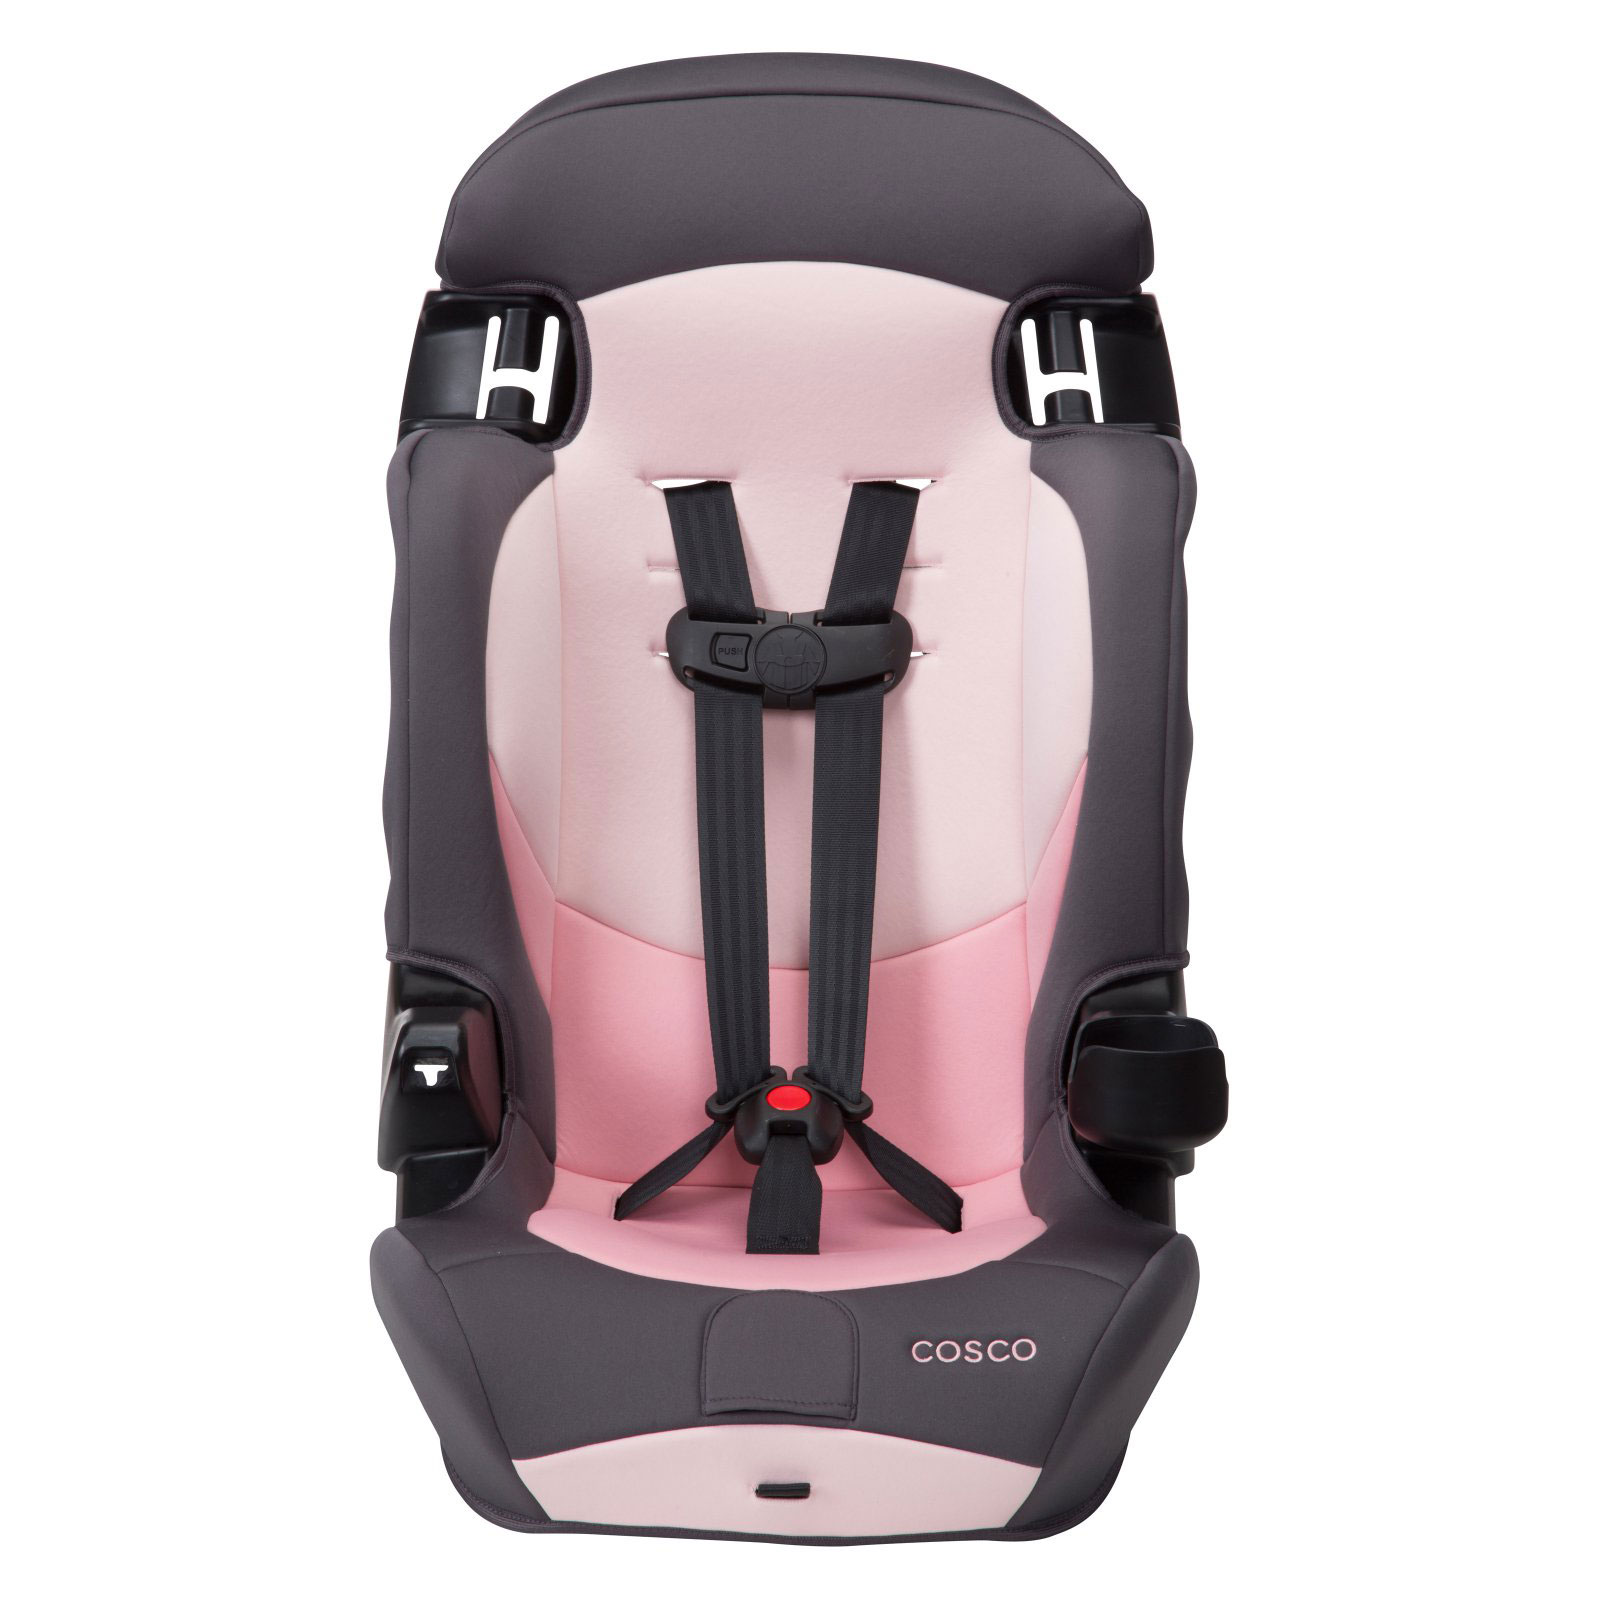 Costco Finale Dx 2 In 1 Convertible Baby Toddler Booster Car Seat Sweetberry